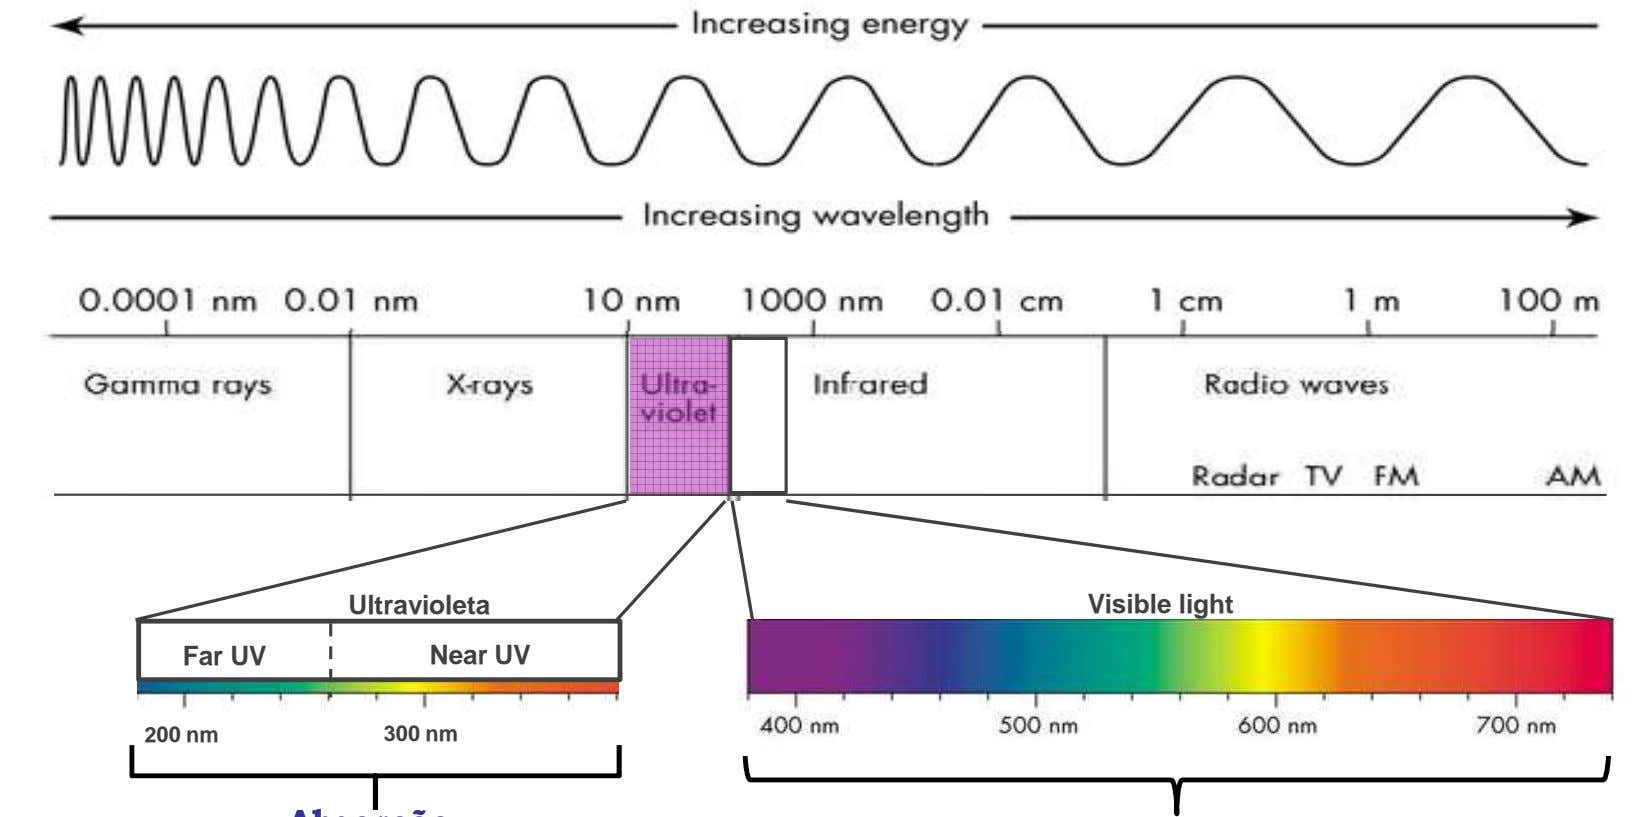 Far UV Ultravioleta Near UV Visible light